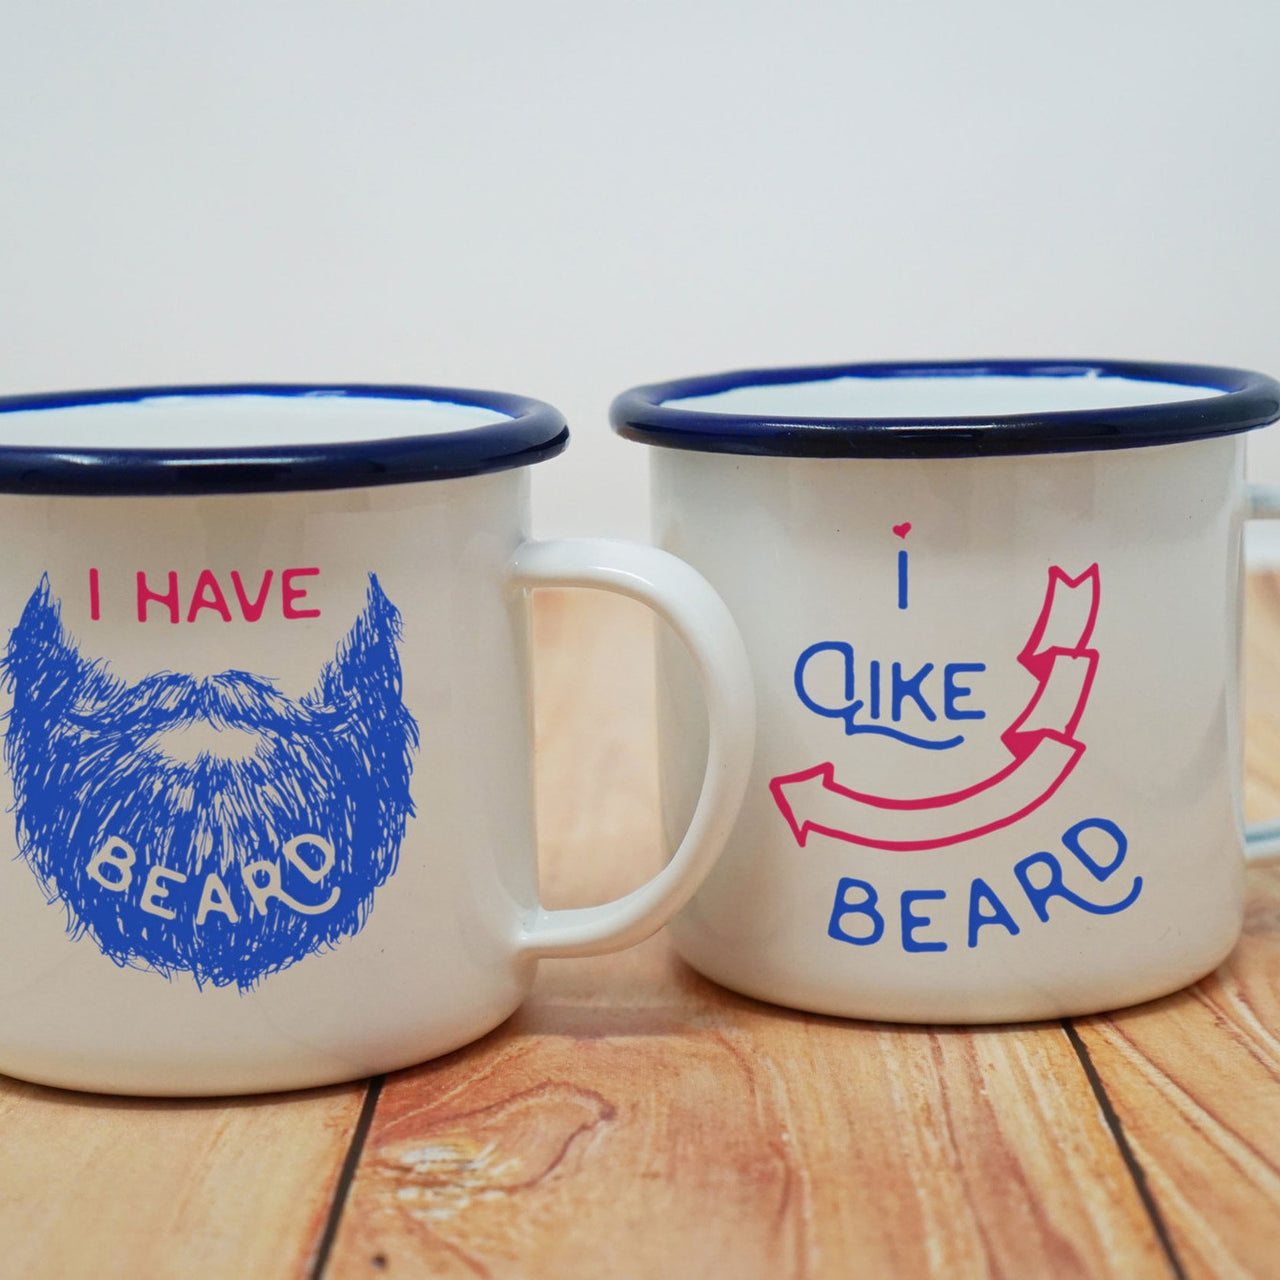 Couples Coffee Mug Set: I Have Beard/I Like Beard Enamel Mugs-Enamel Co.